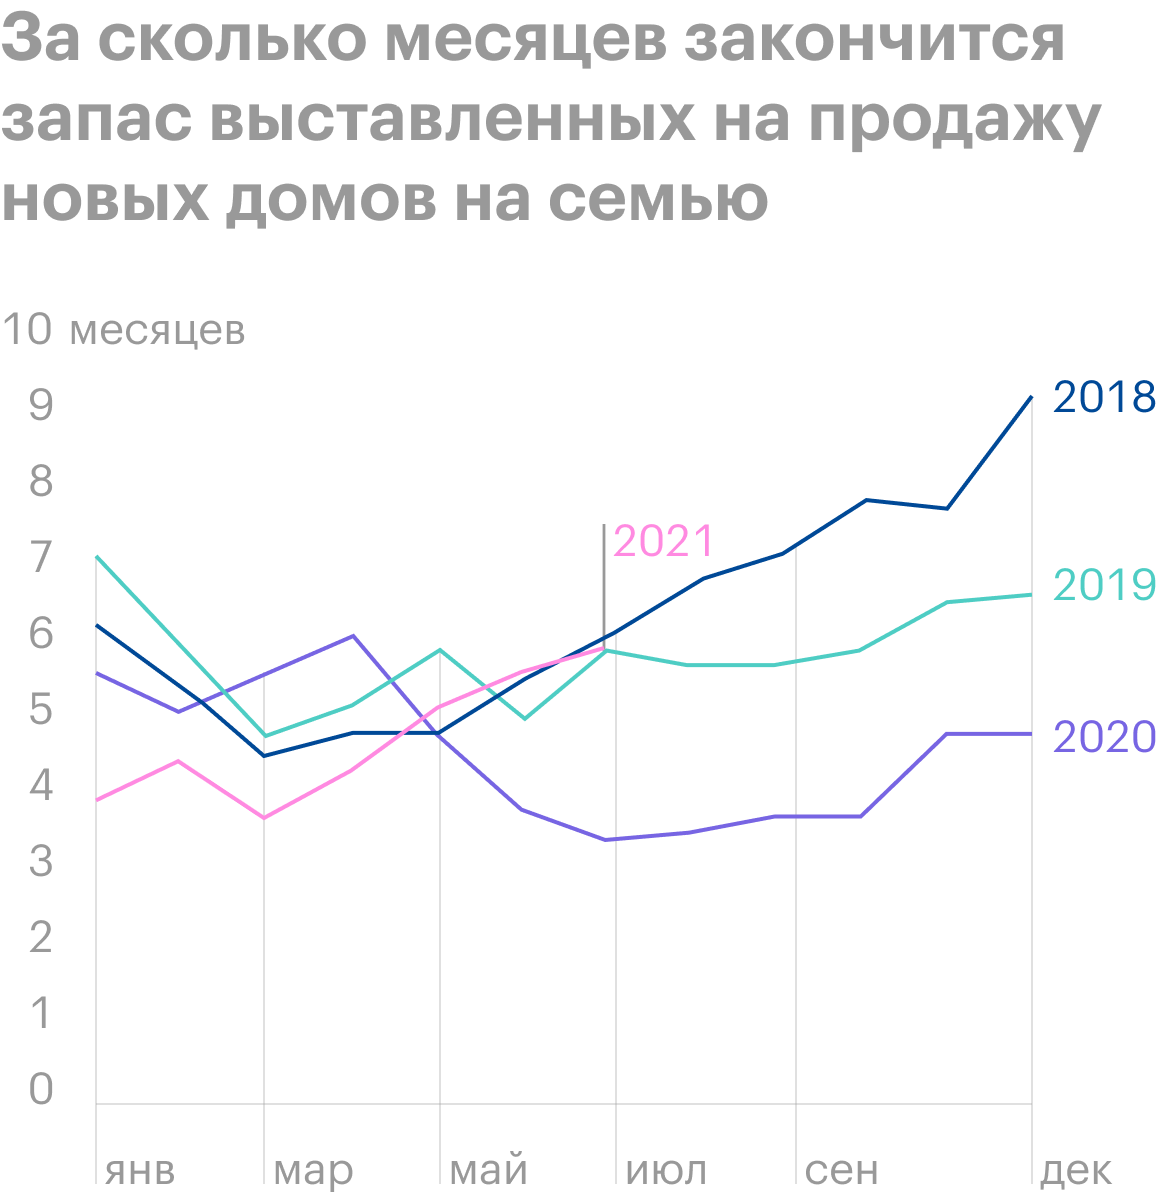 Источник: Daily Shot, Inventories of new homes have been rising